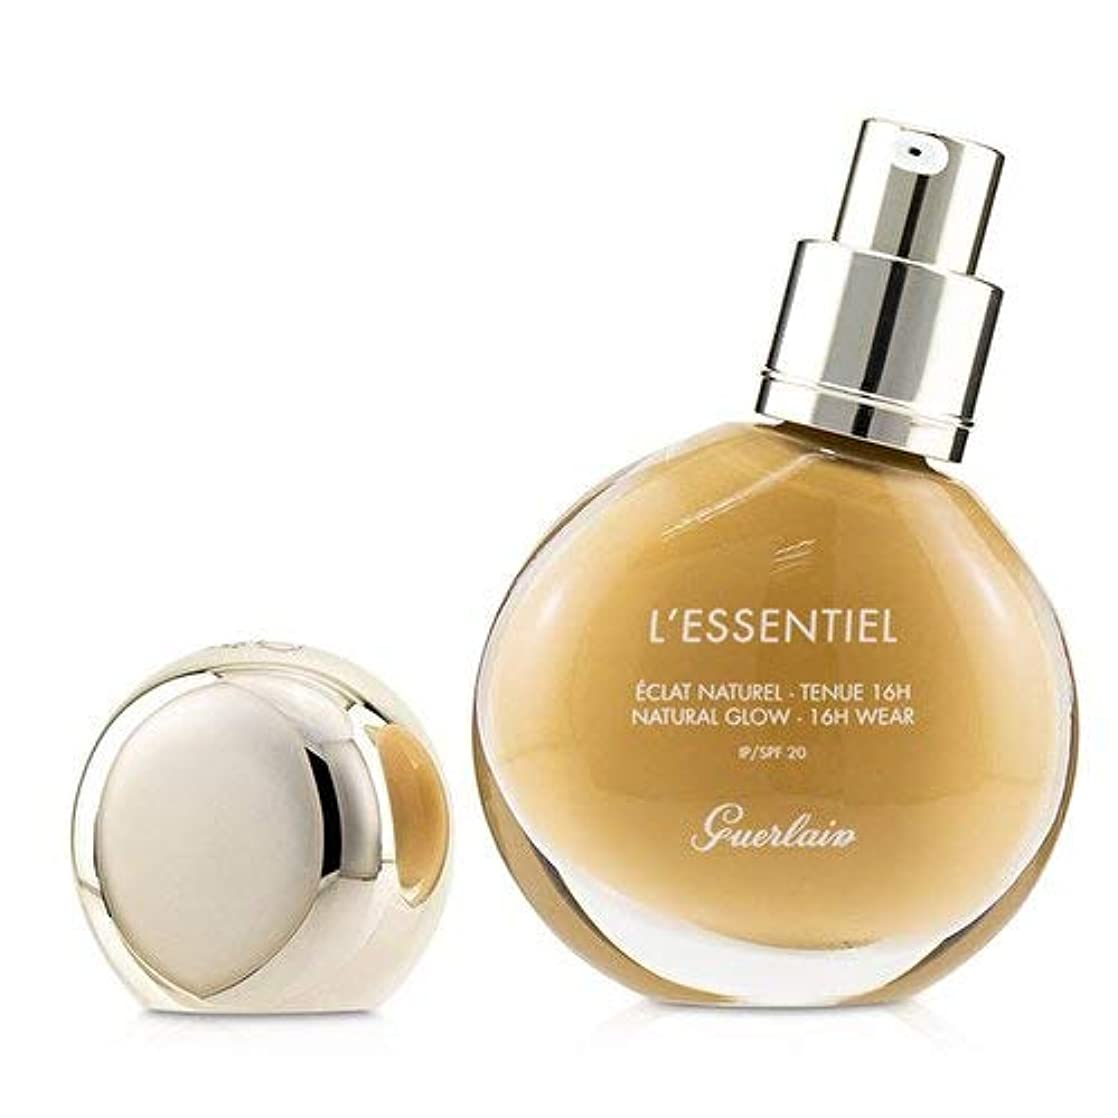 卑しい悪魔妊娠したゲラン L'Essentiel Natural Glow Foundation 16H Wear SPF 20 - # 045W Amber Warm 30ml/1oz並行輸入品